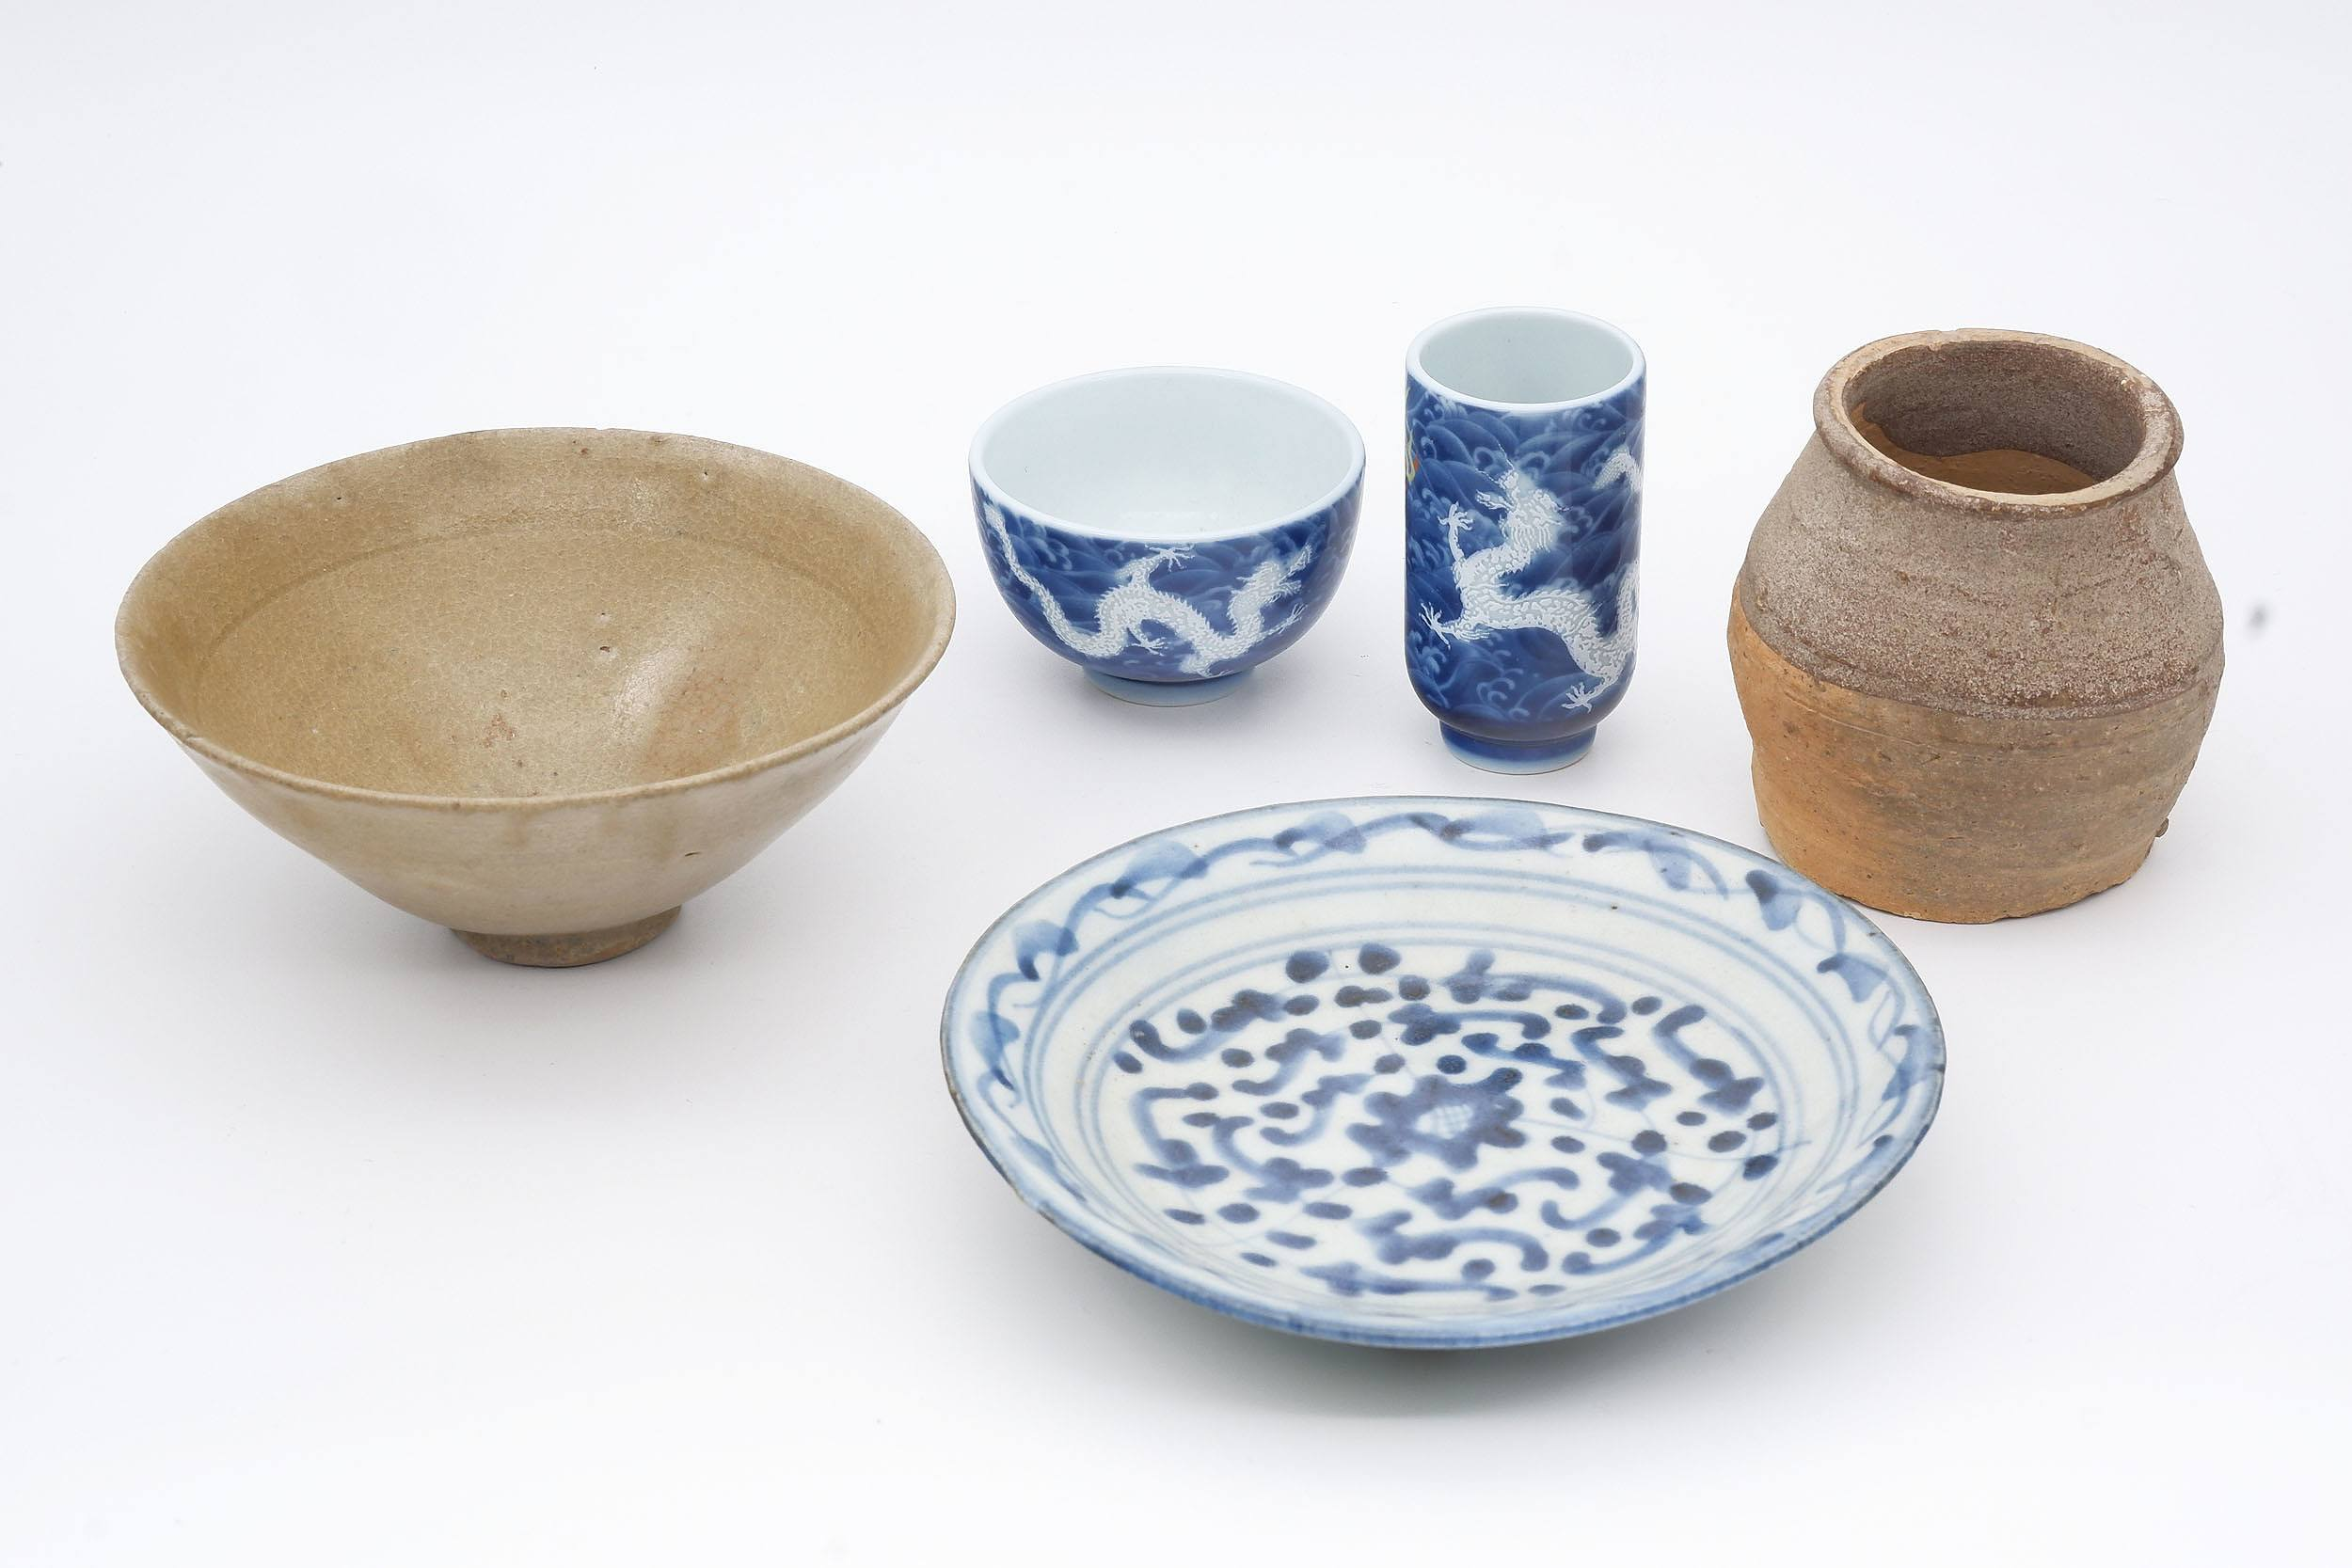 'Small Korean Conical Teabowl Probably Koryo Goryeo Dynasty (918-1392) and a Group of Various Chinese Ceramics'